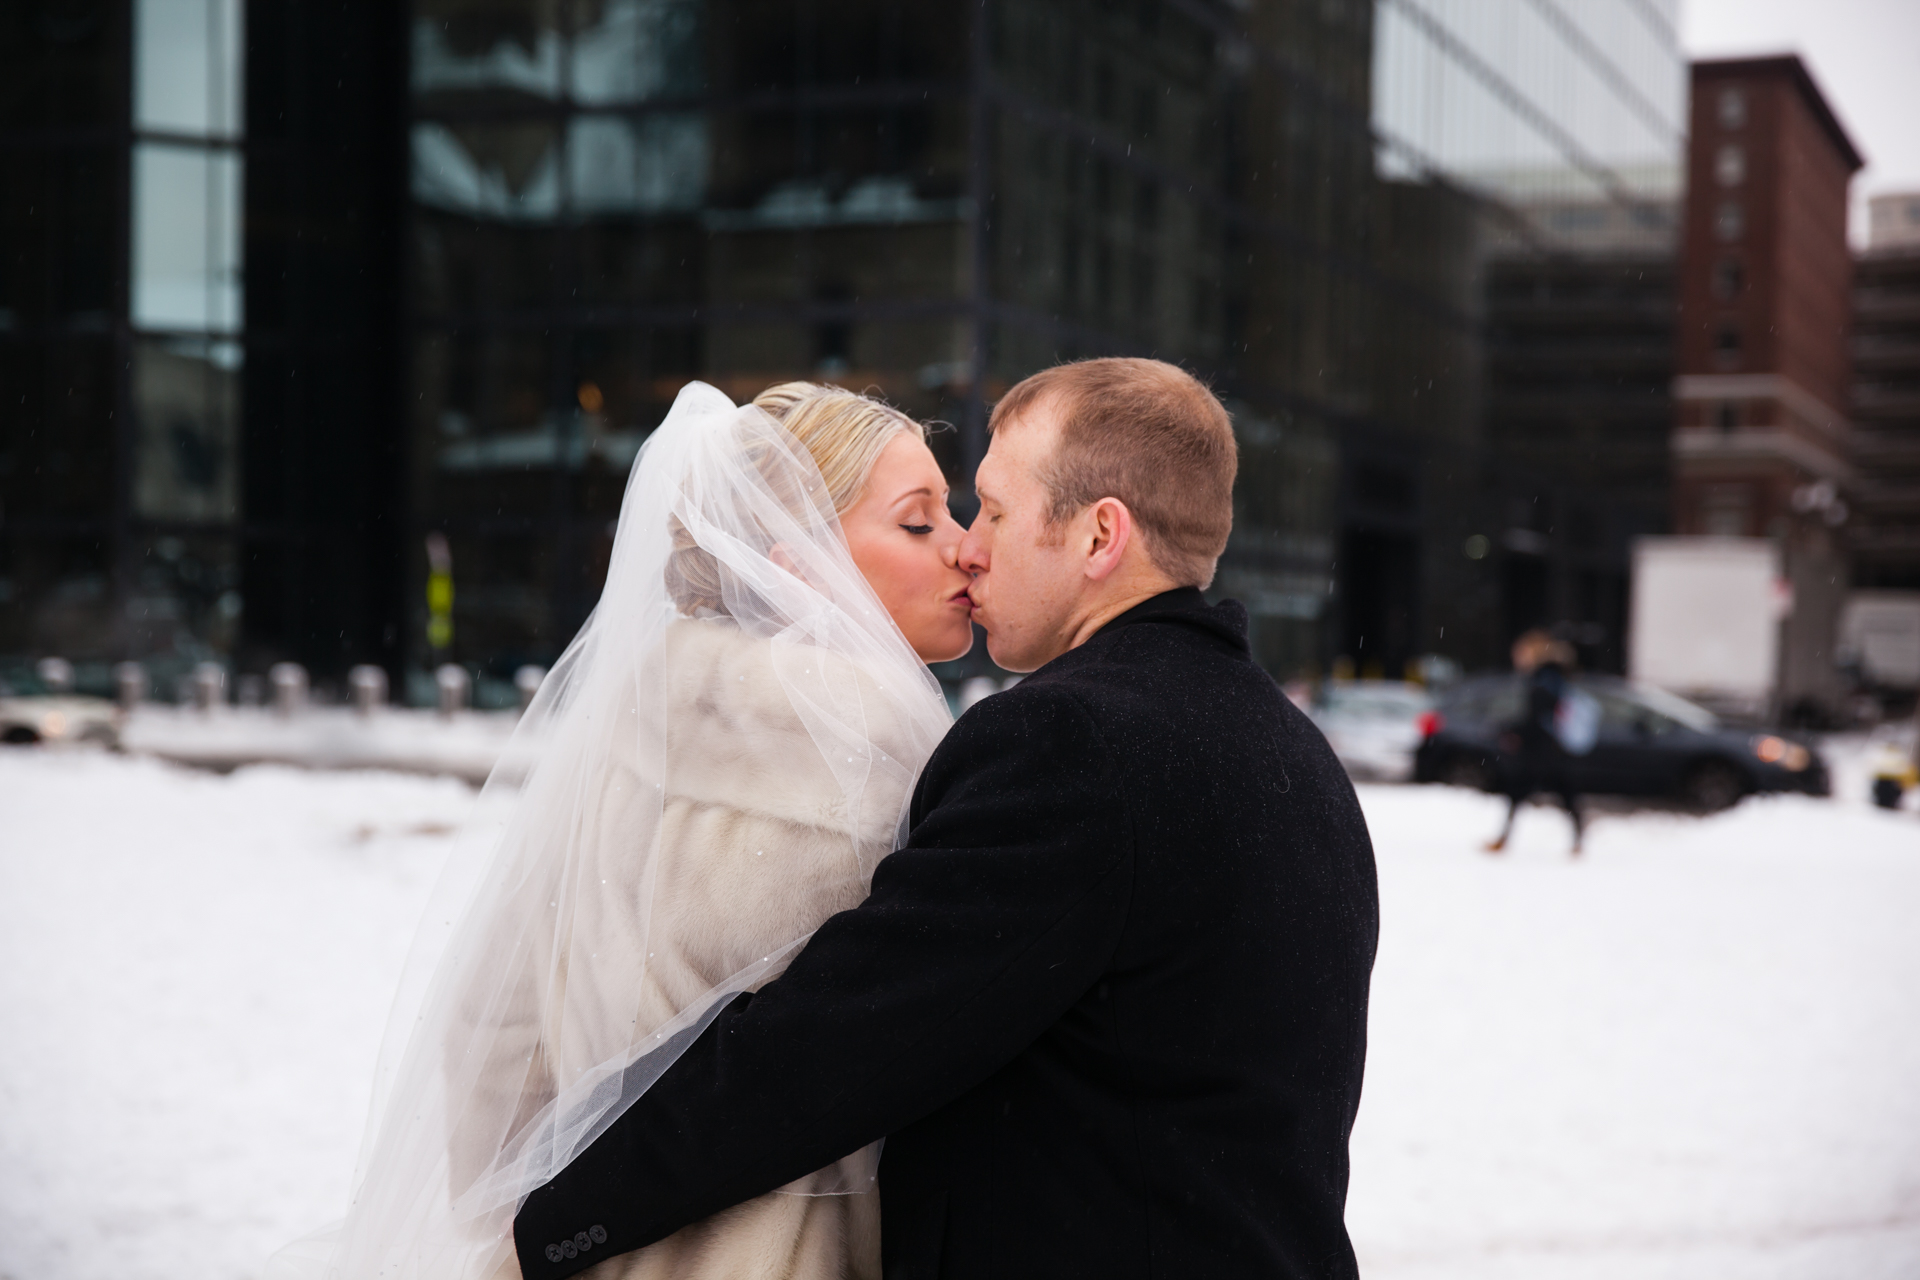 Boston-Fairmont-Copley-Plaza-Wedding-AmandaMorgan-Photography-45.jpg